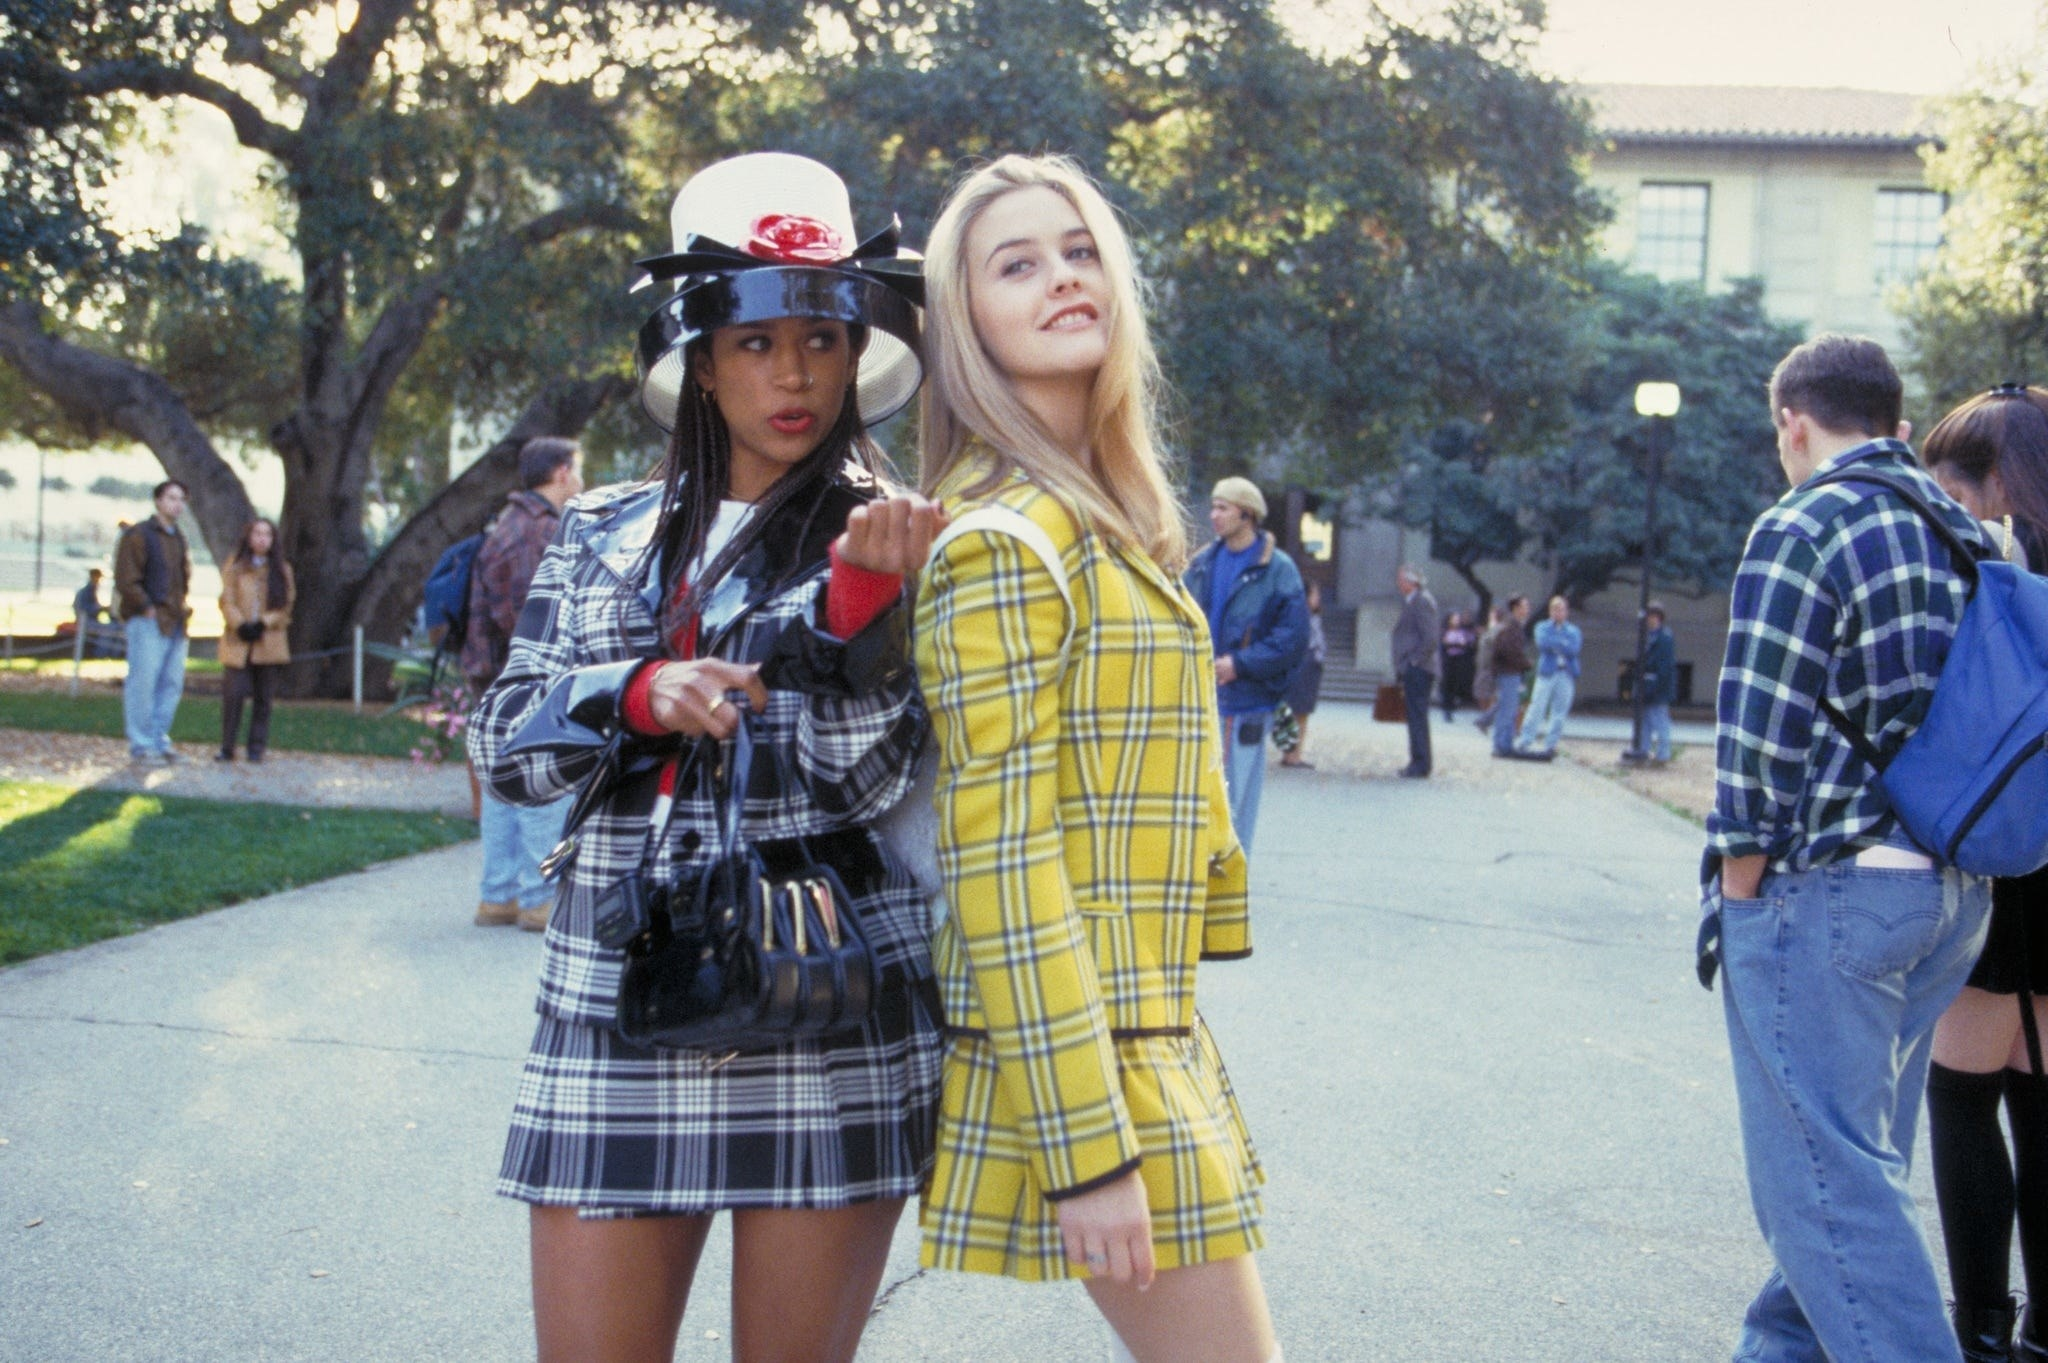 Dionne and Cher at school, wearing matching plaid blazers and skirts